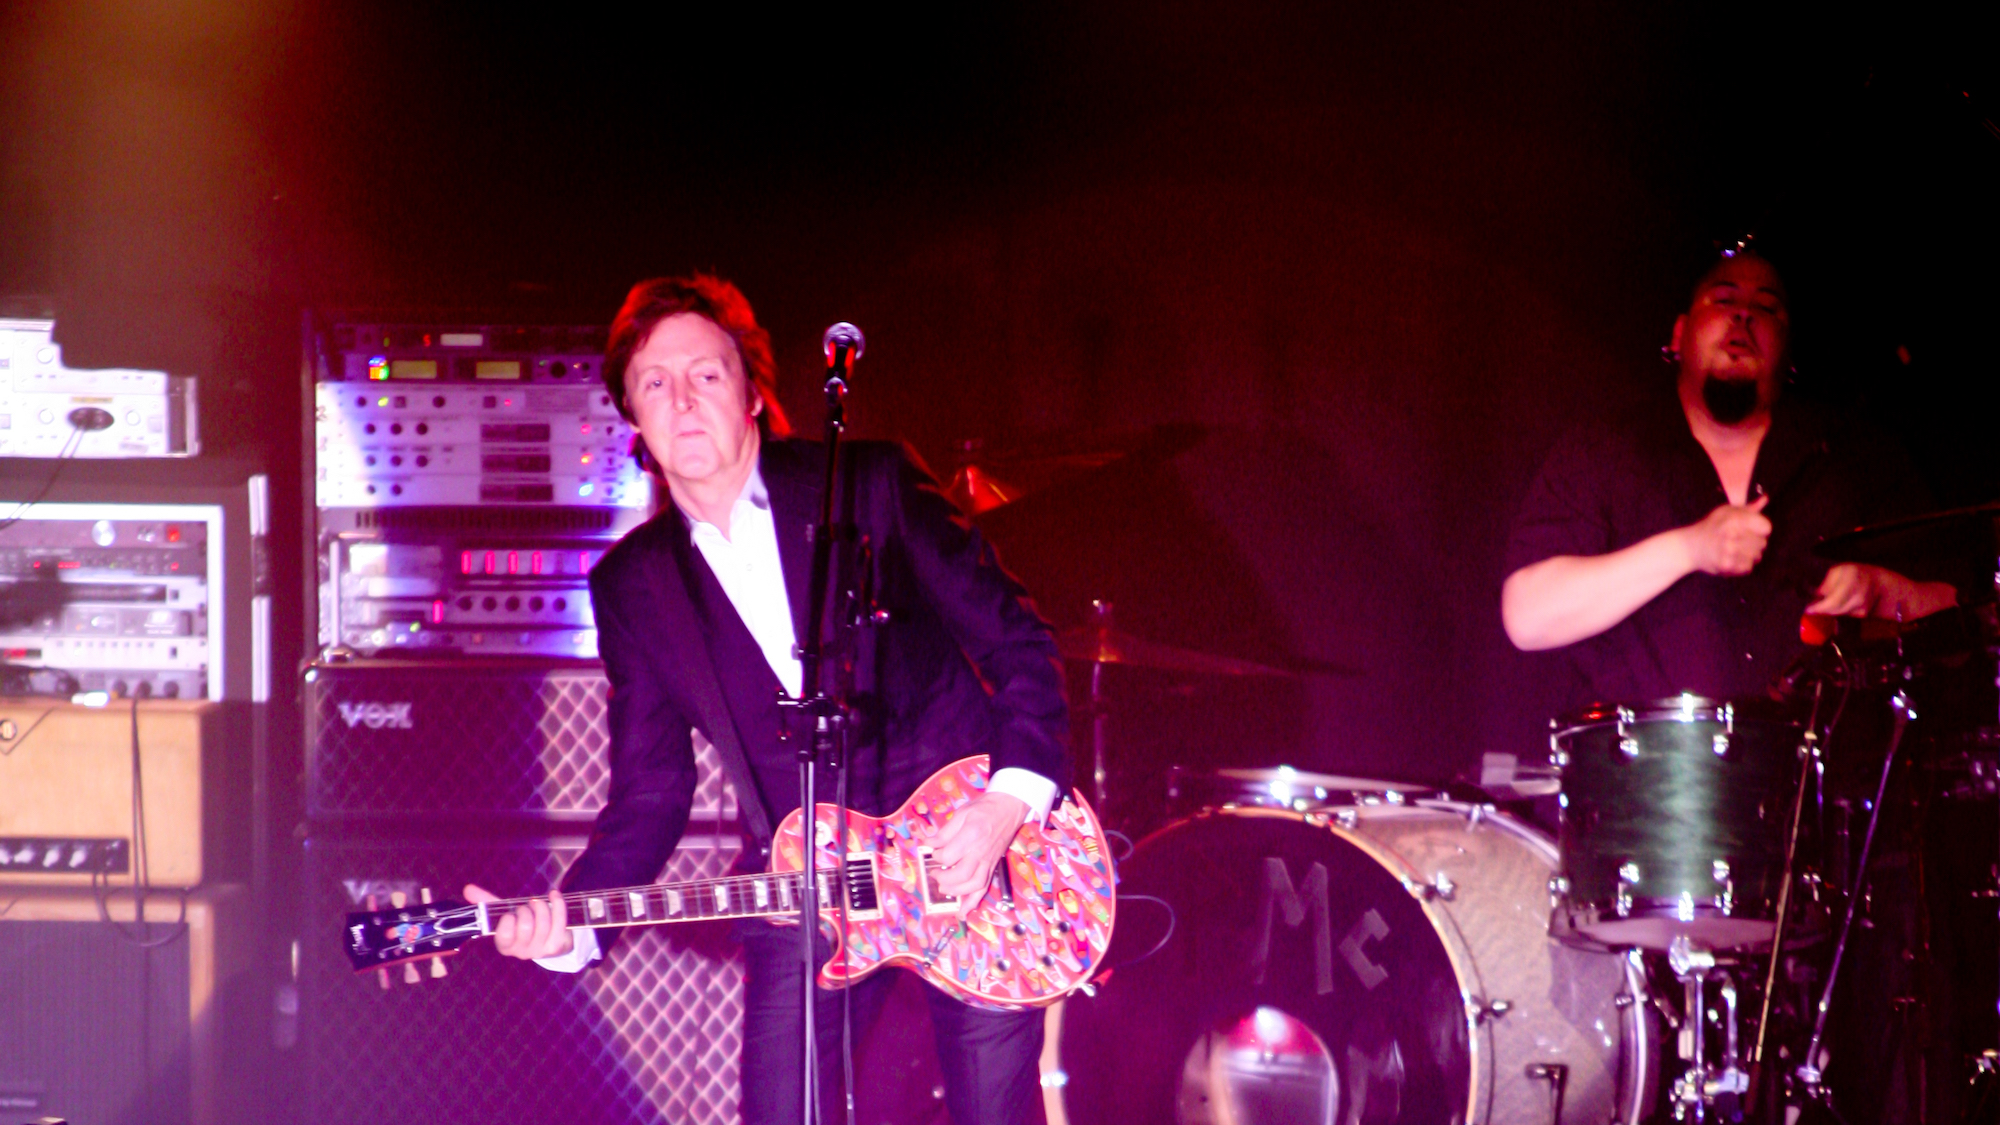 Paul McCartney's Top Six Guitar Solos with The Beatles | Guitarworld